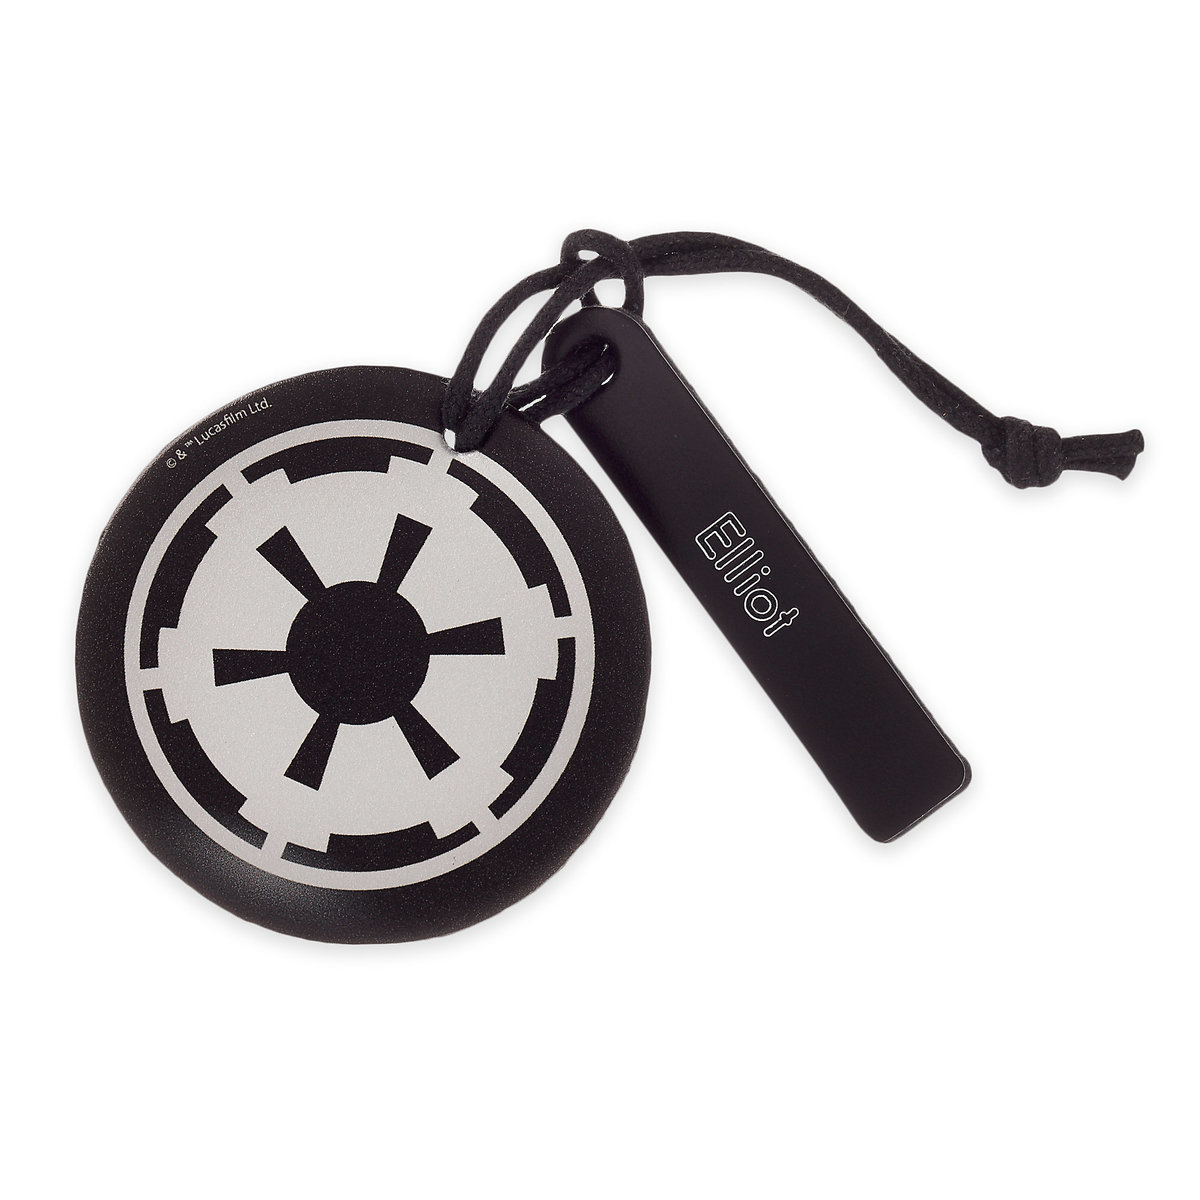 Star wars imperial symbol leather luggage tag personalizable star wars imperial symbol leather luggage tag personalizable biocorpaavc Images